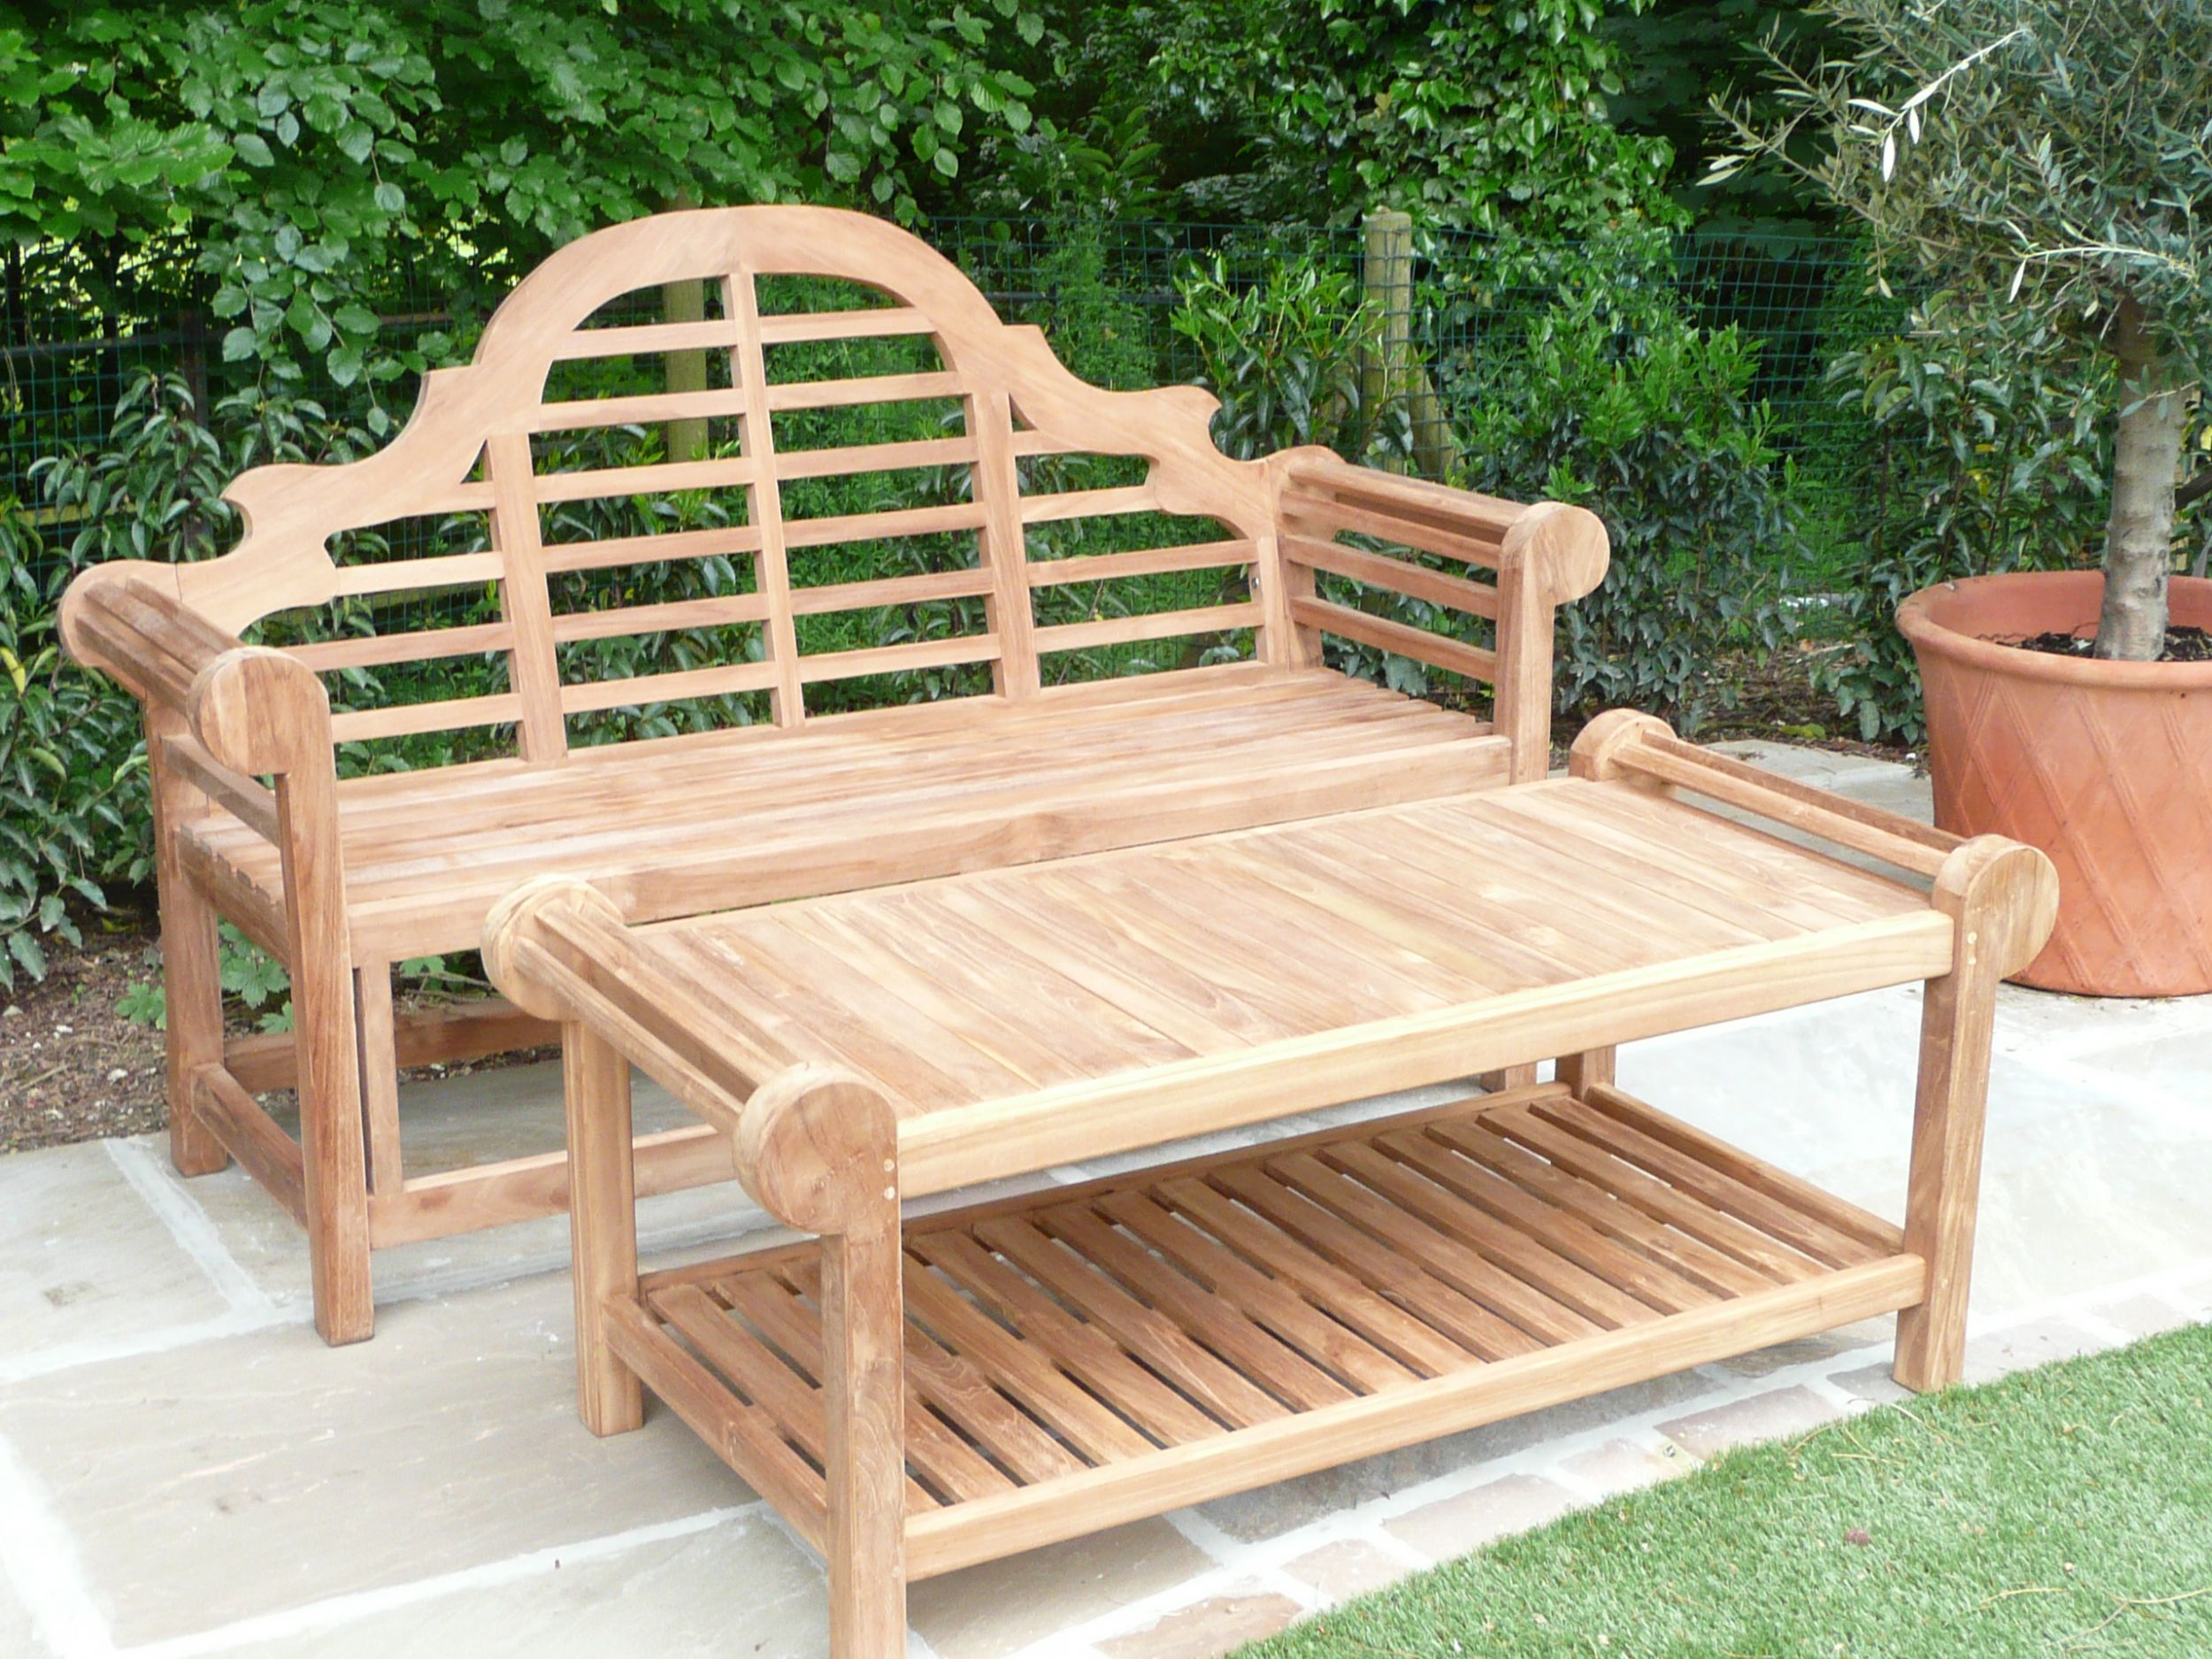 Lutyens Teak Bench Amp Coffee Table Humber Imports Uk